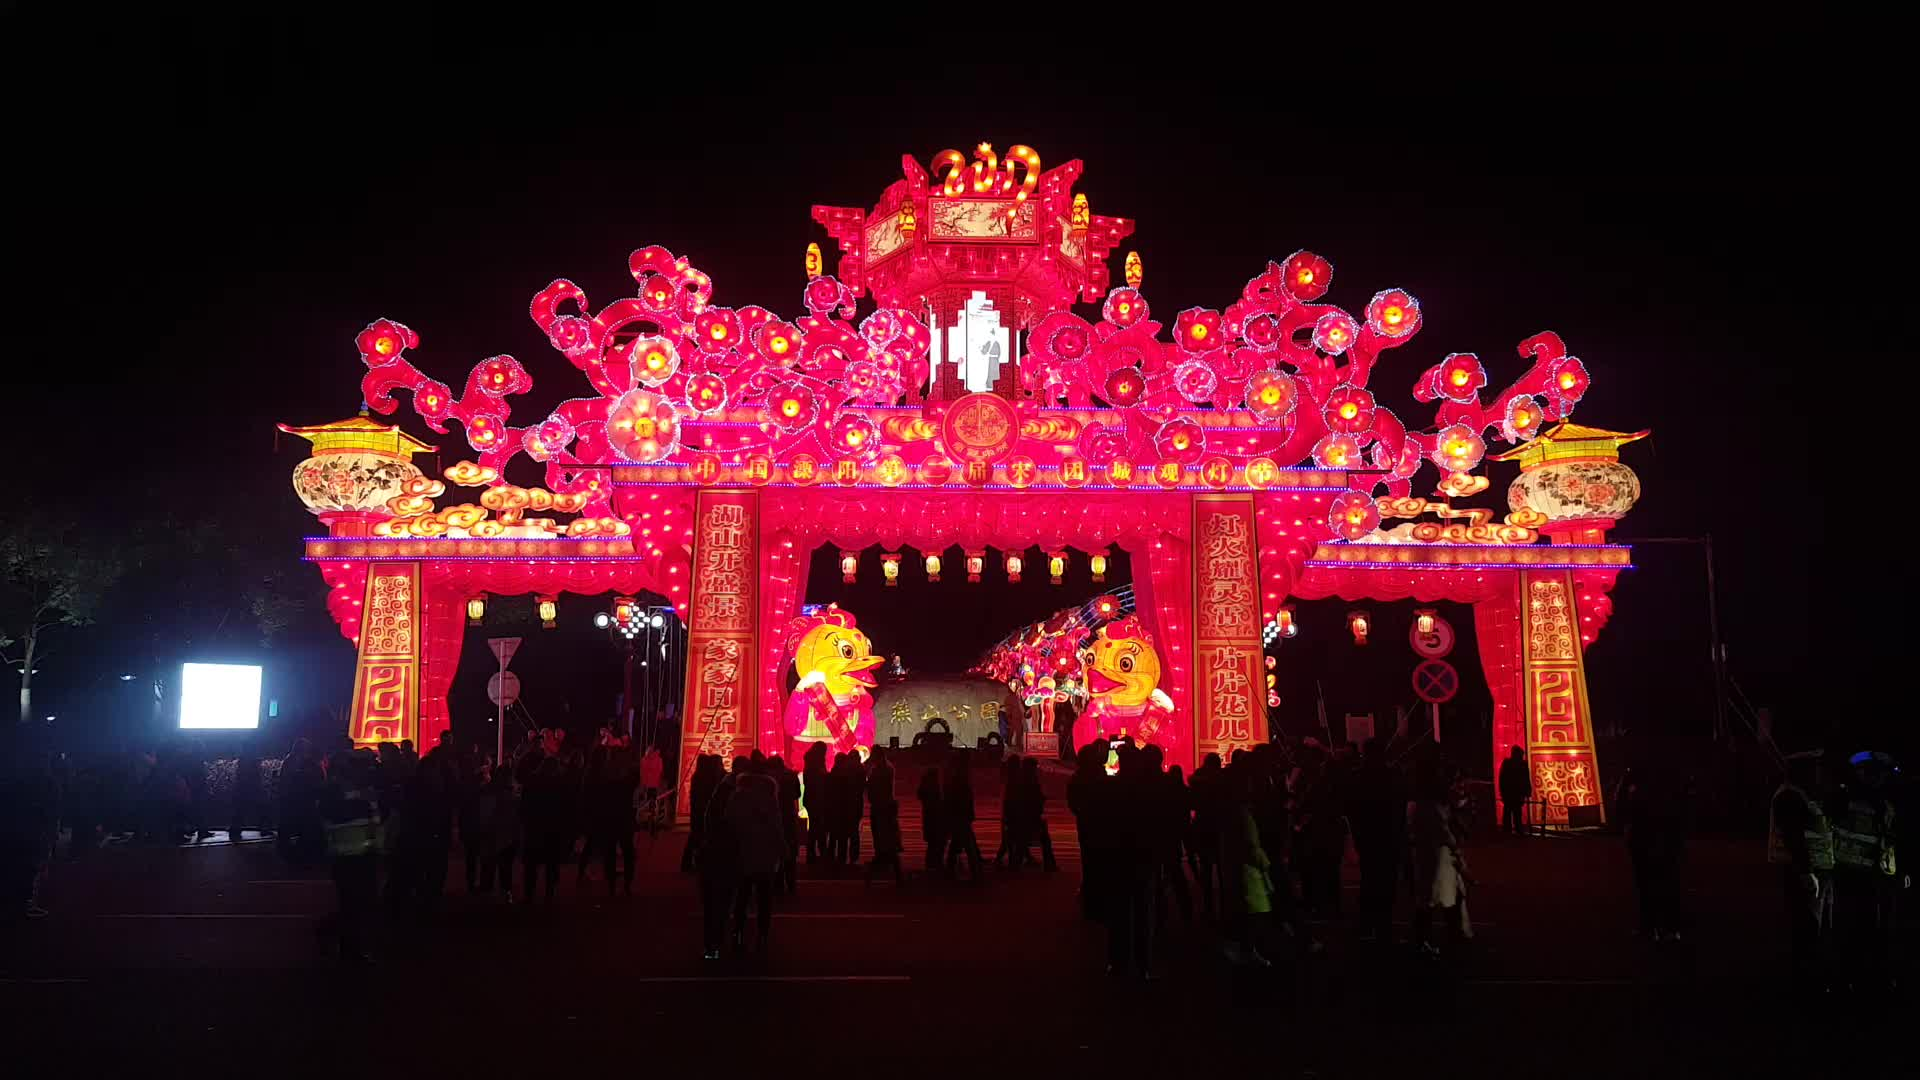 mooncake festival With the 2013 mid-autumn festival in taiwan coming up on september 19th, it's worth getting to know the traditions and history associated with this important festival.